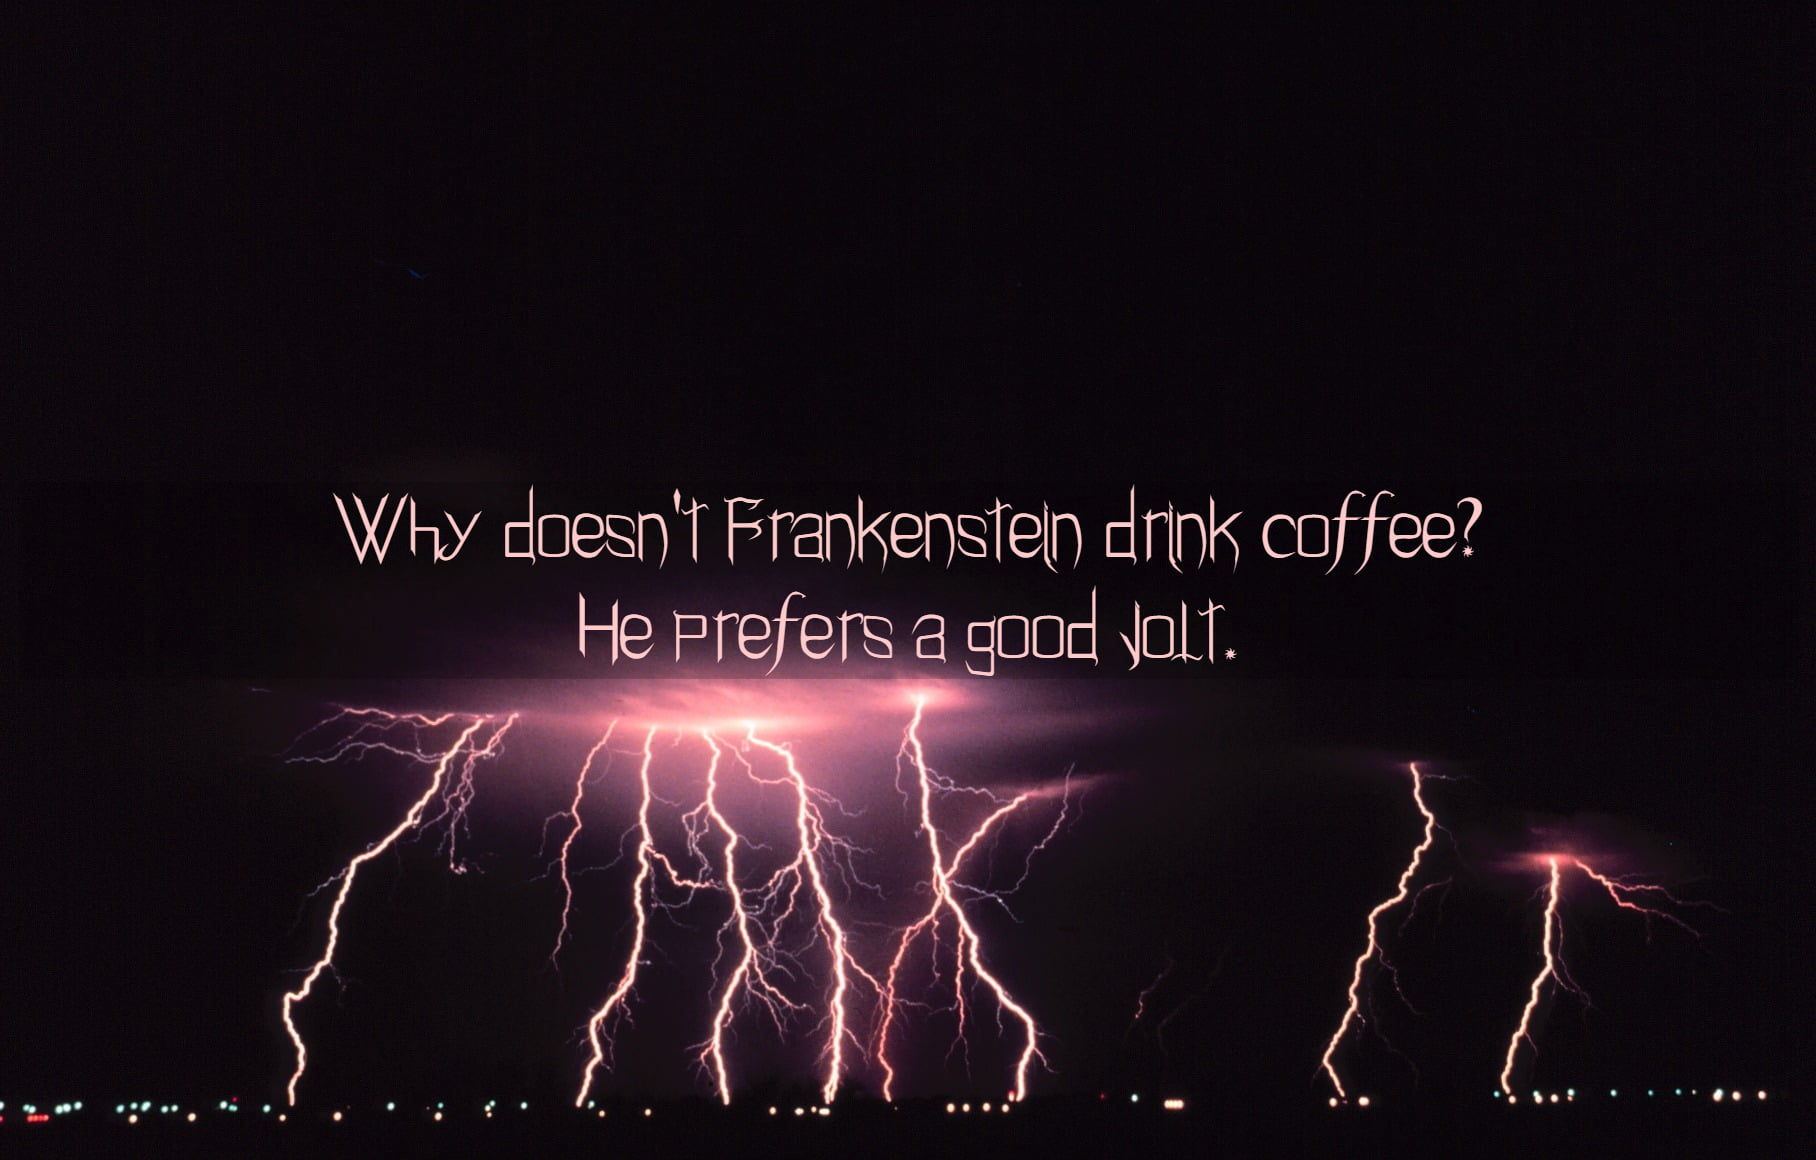 Lightning strikes with text Why doesn't Frankenstein drink coffee? He prefers a good Jolt.